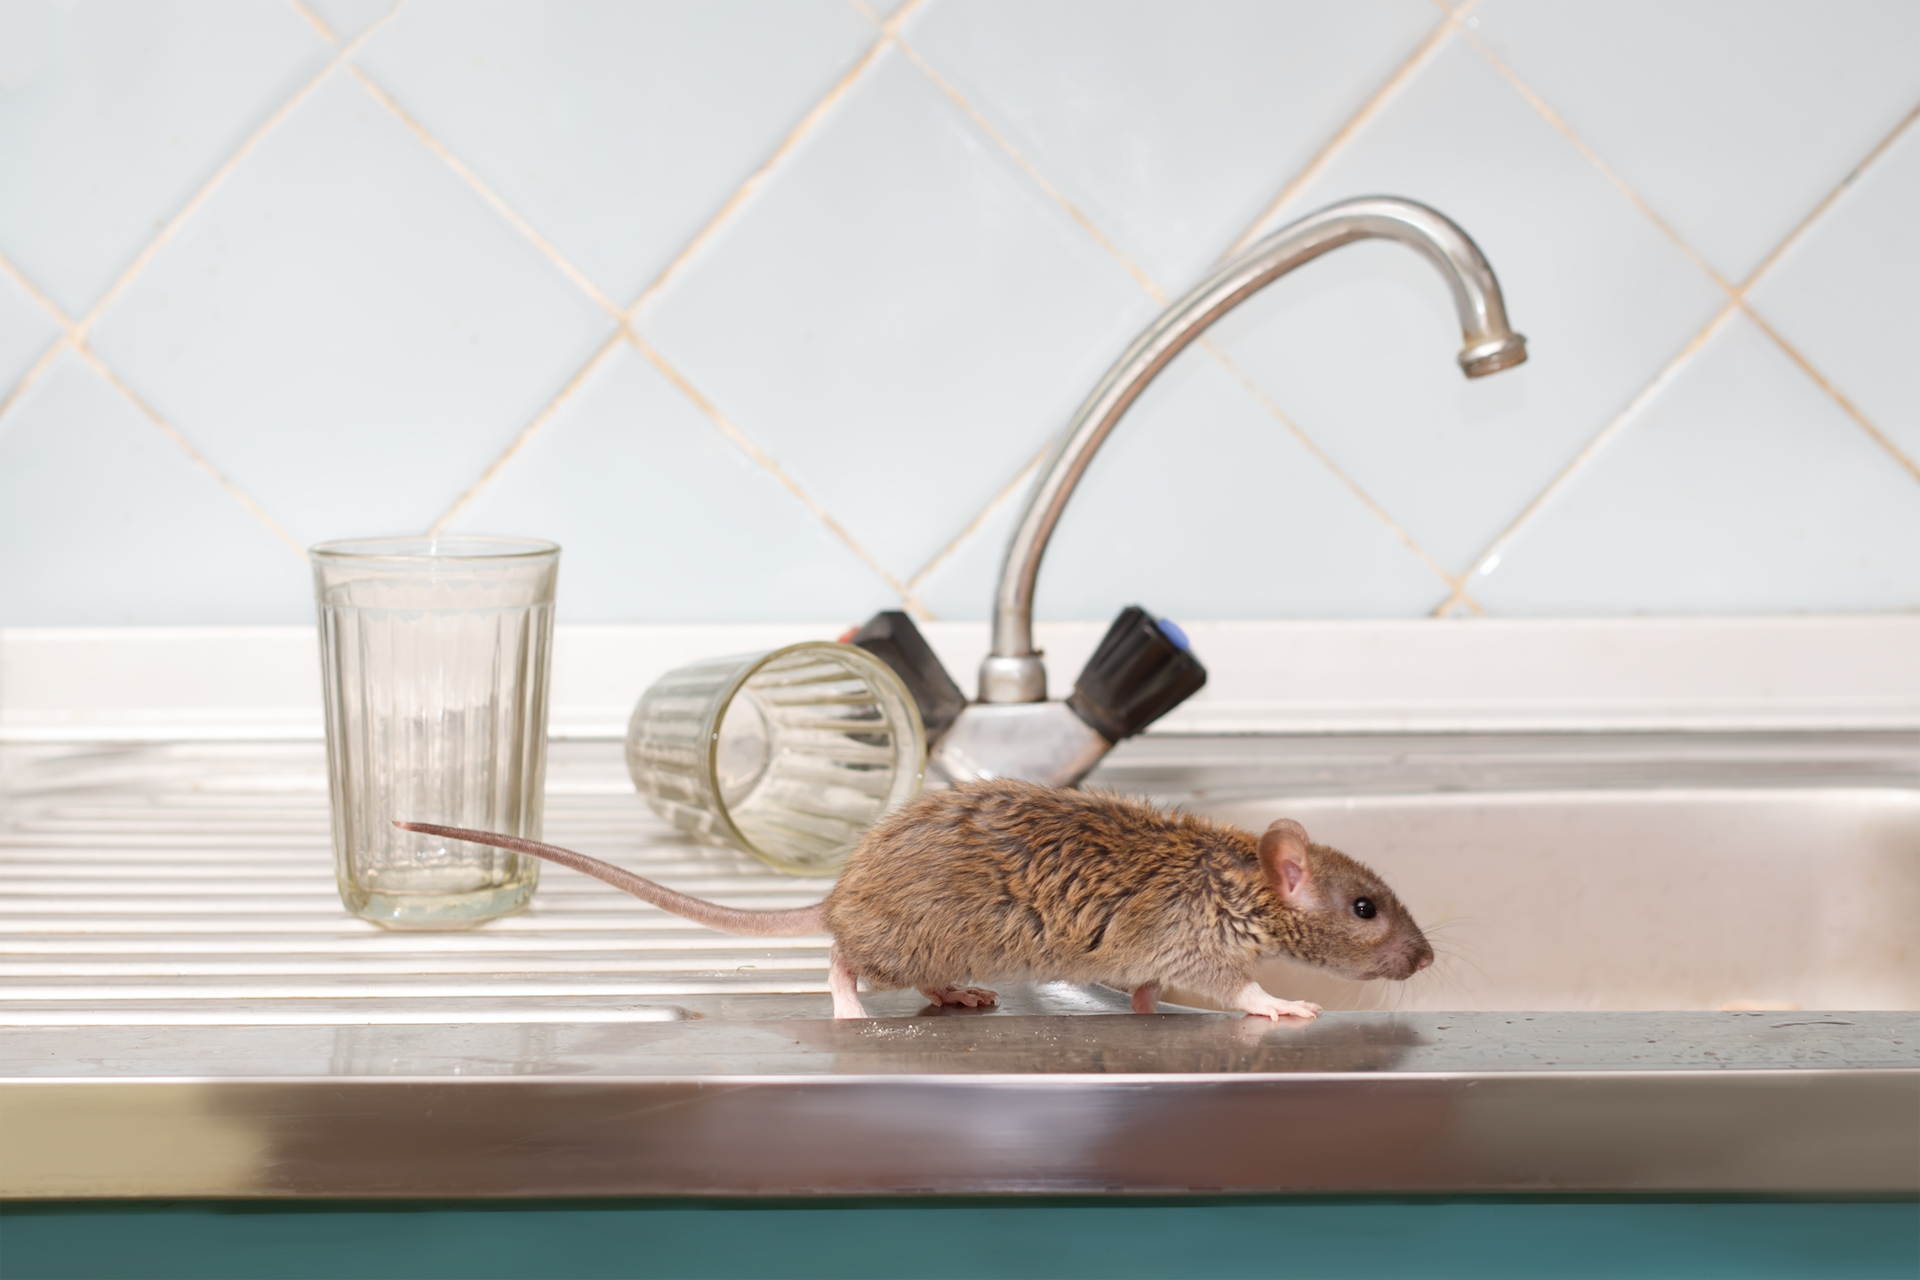 Contact Your Orlando Rodent Control Pros to Mitigate Your Rodent Infestation